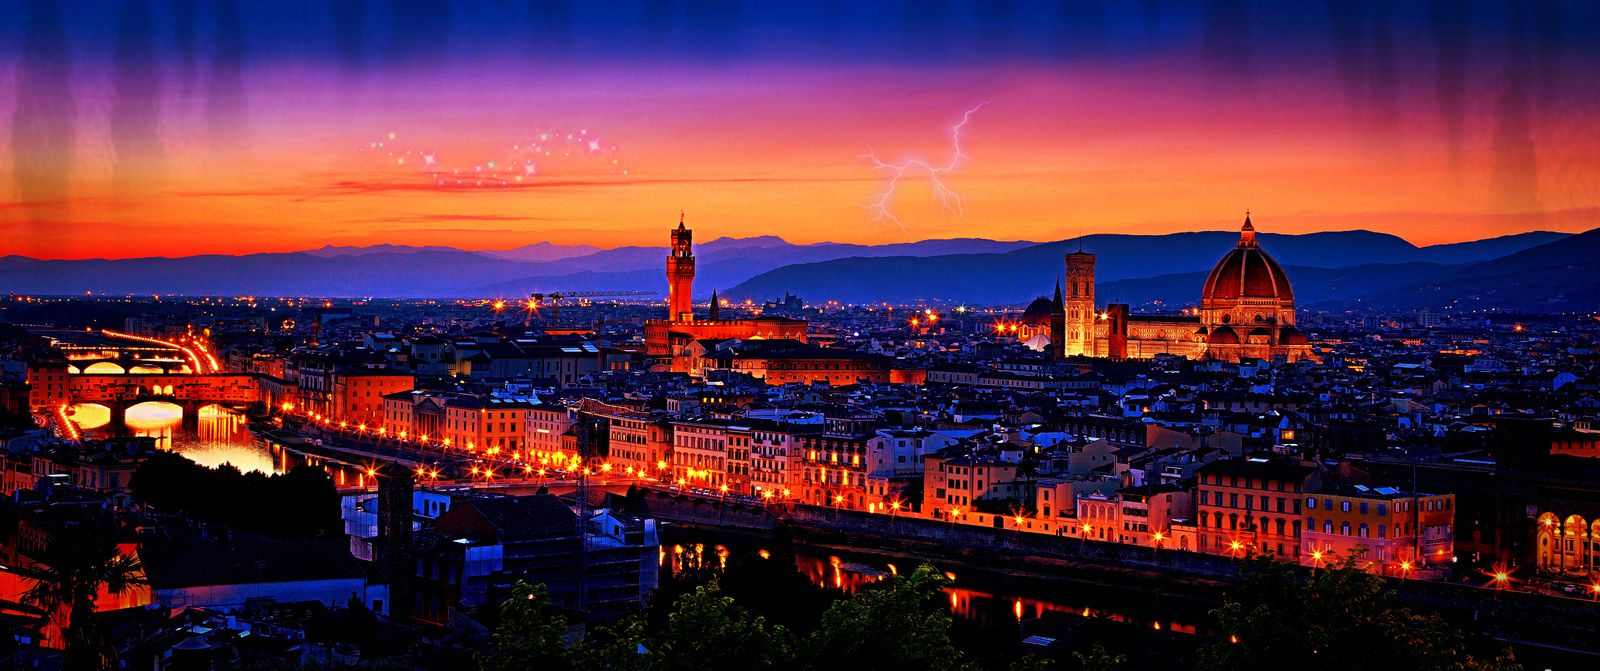 Anywhere out of the world - Florence